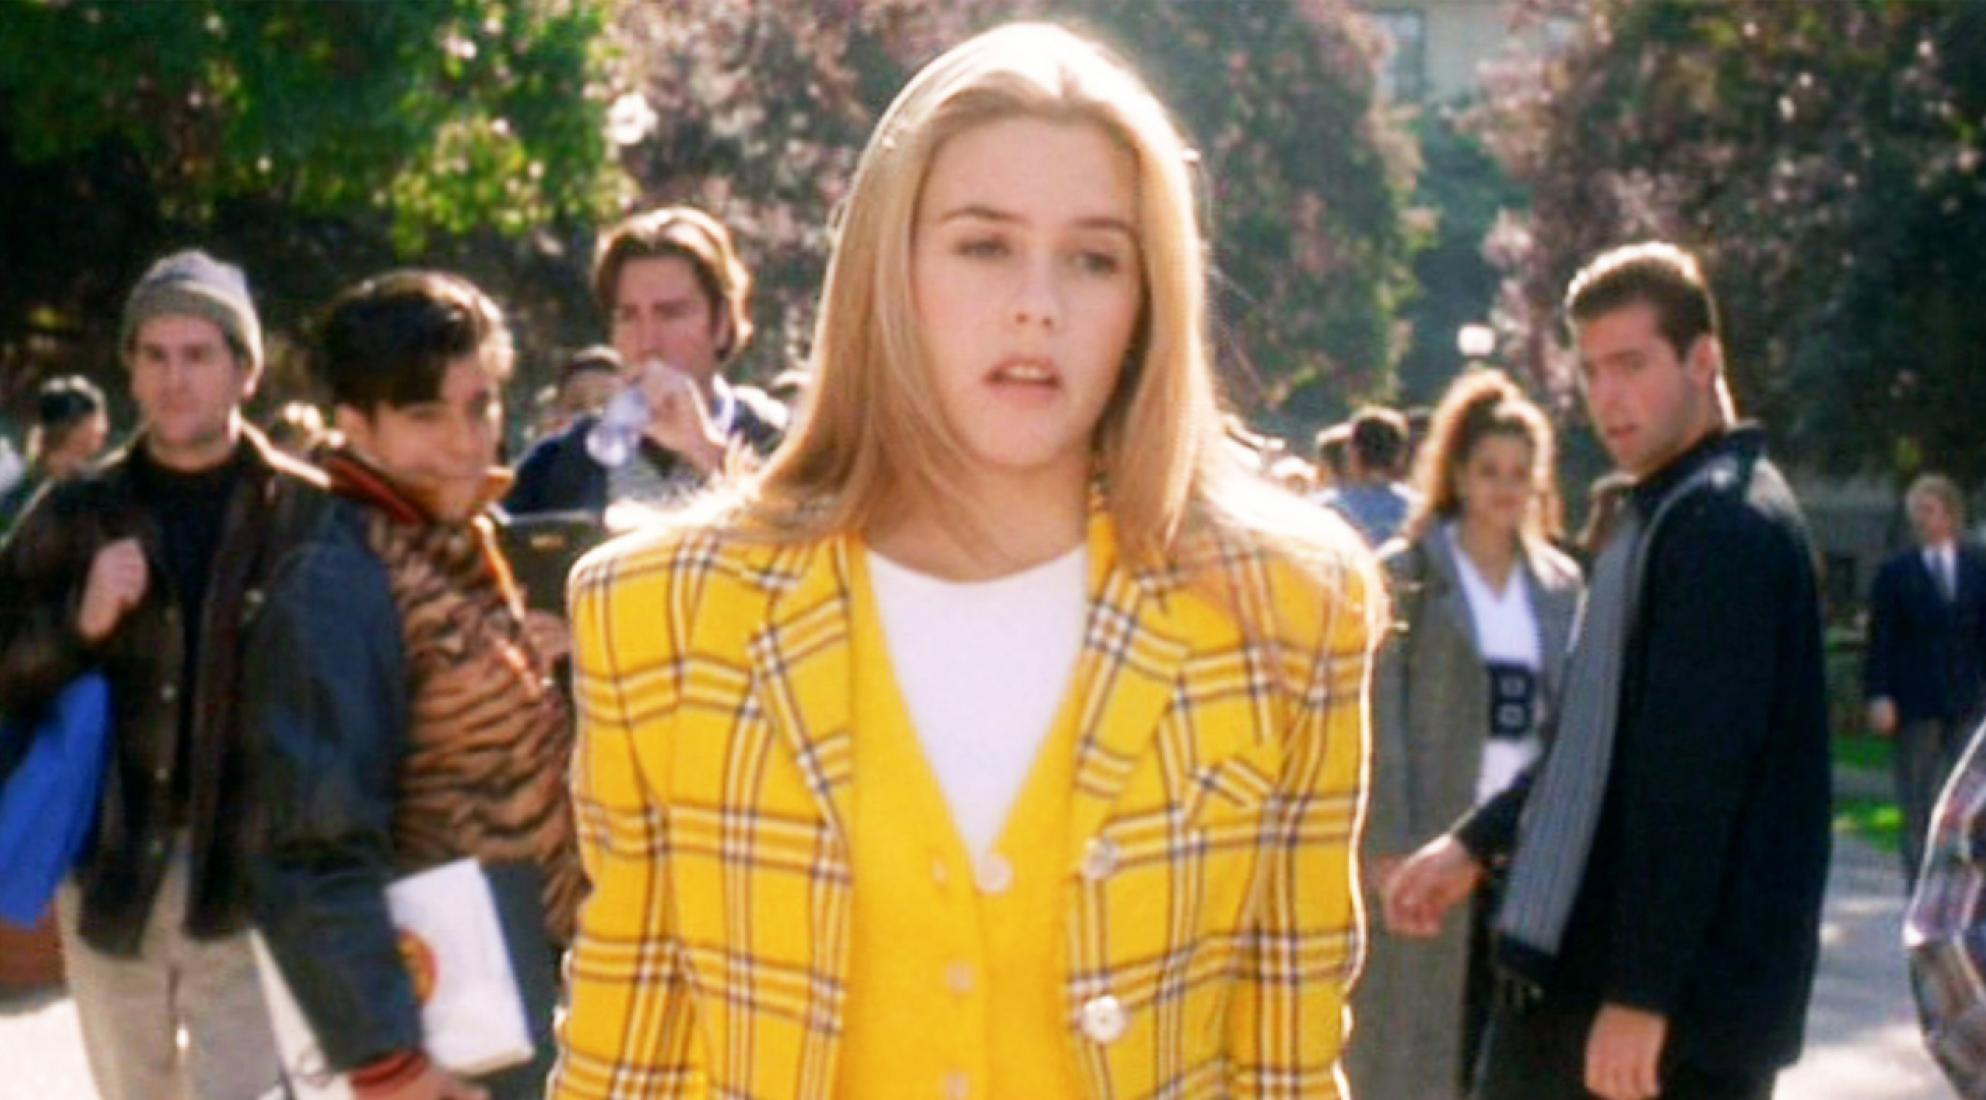 Alicia Silverstone as Cher Horowitz in 'Clueless' (1995)